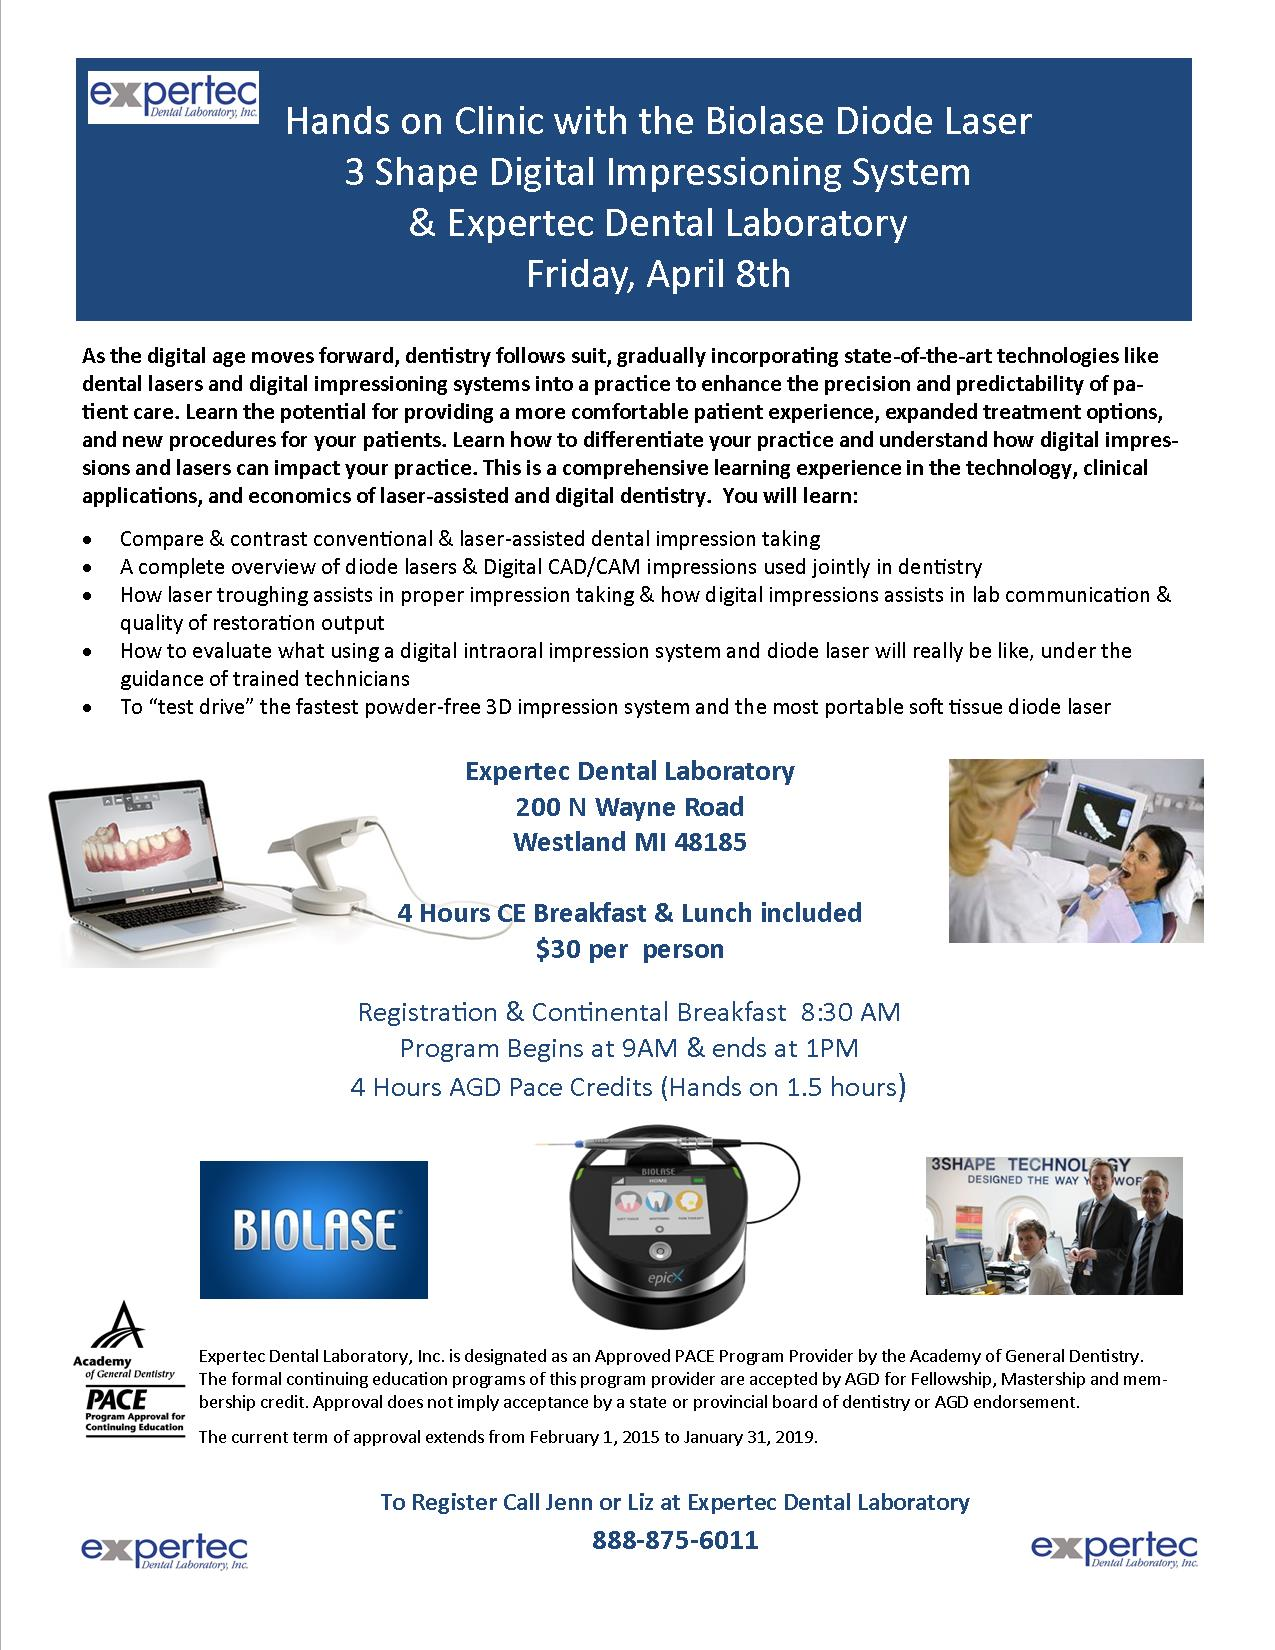 Hands On Dental Continuing Education Course